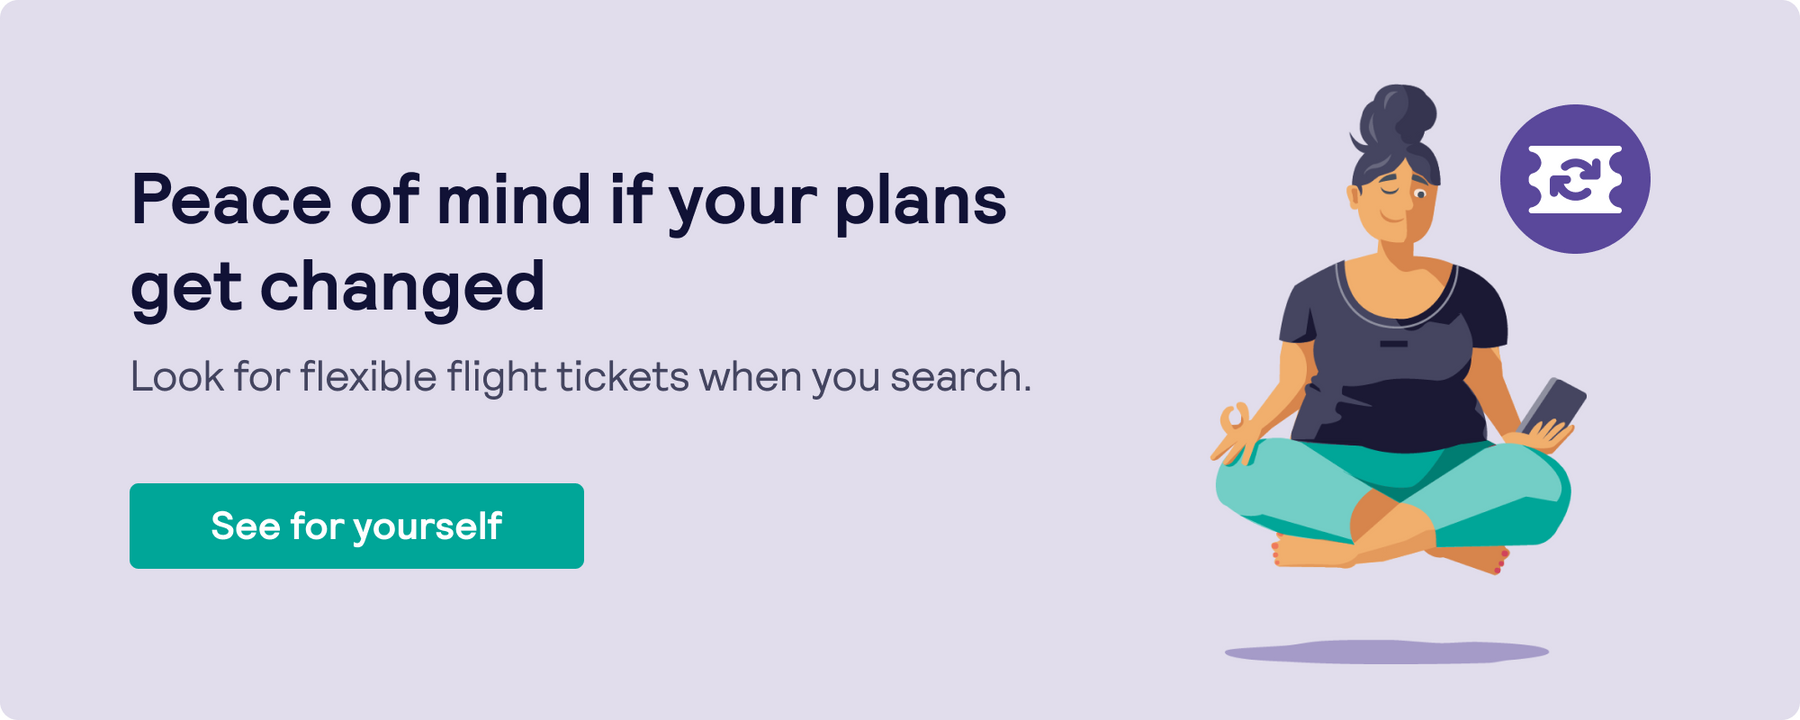 Look for flexible flight tickets when you search with Skyscanner